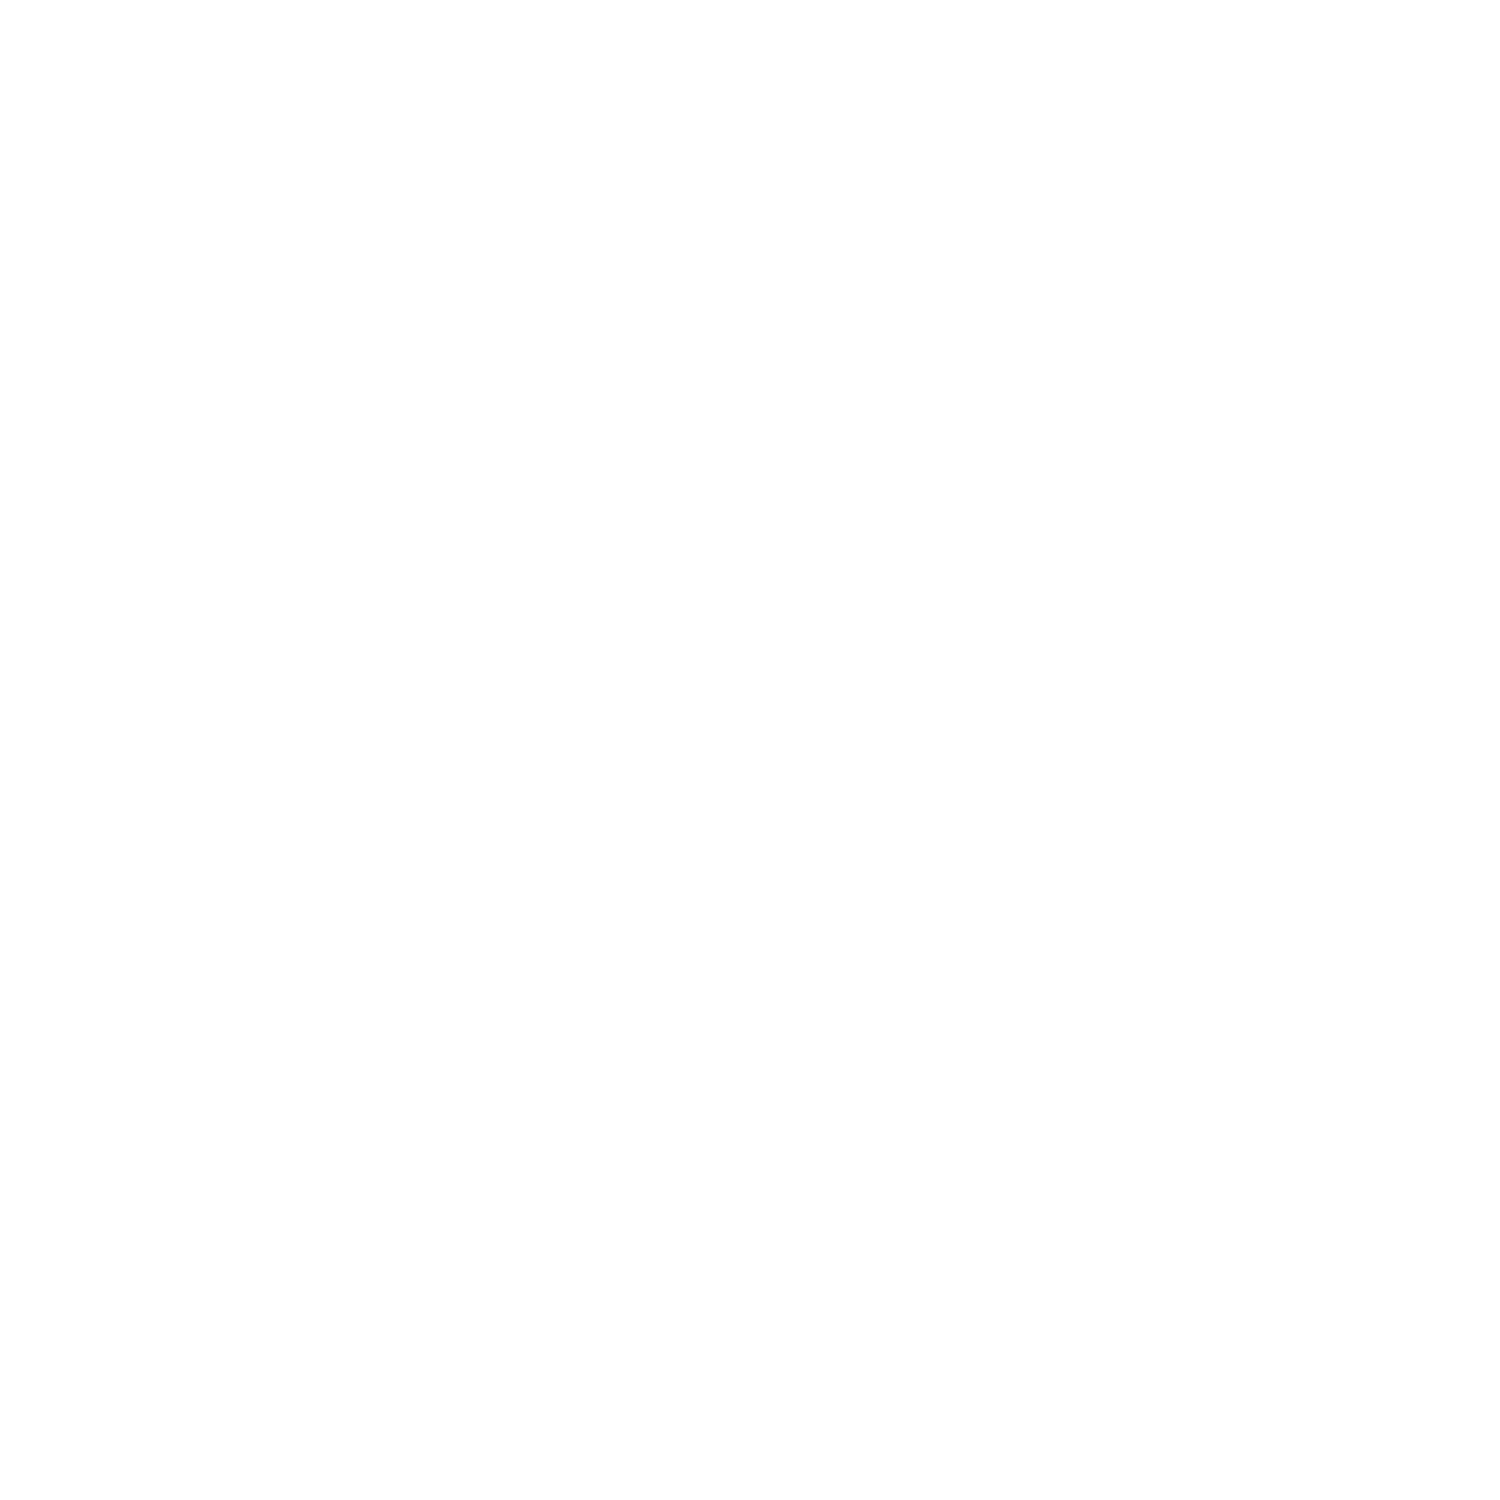 Dead Seconds Society